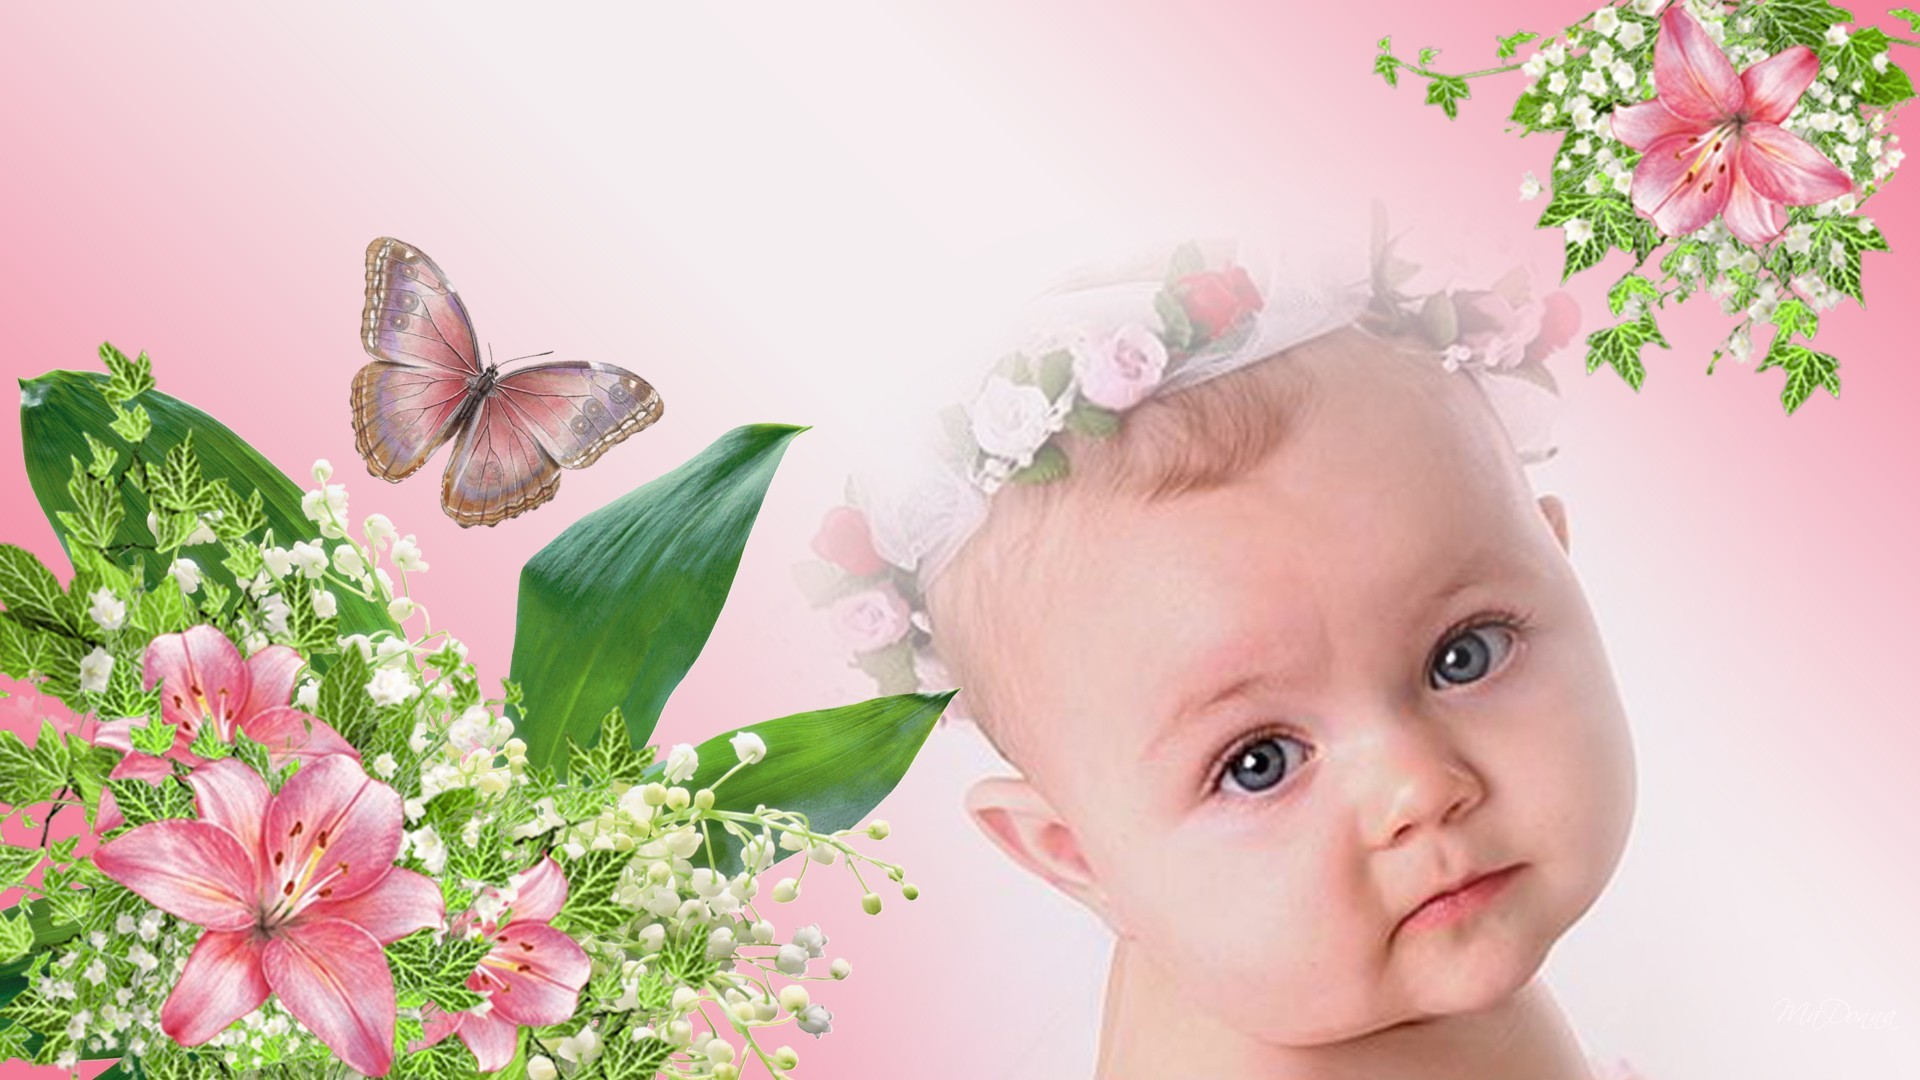 1920x1080 View Cute Angel Baby Girl Picture Wallpaper in Resolution